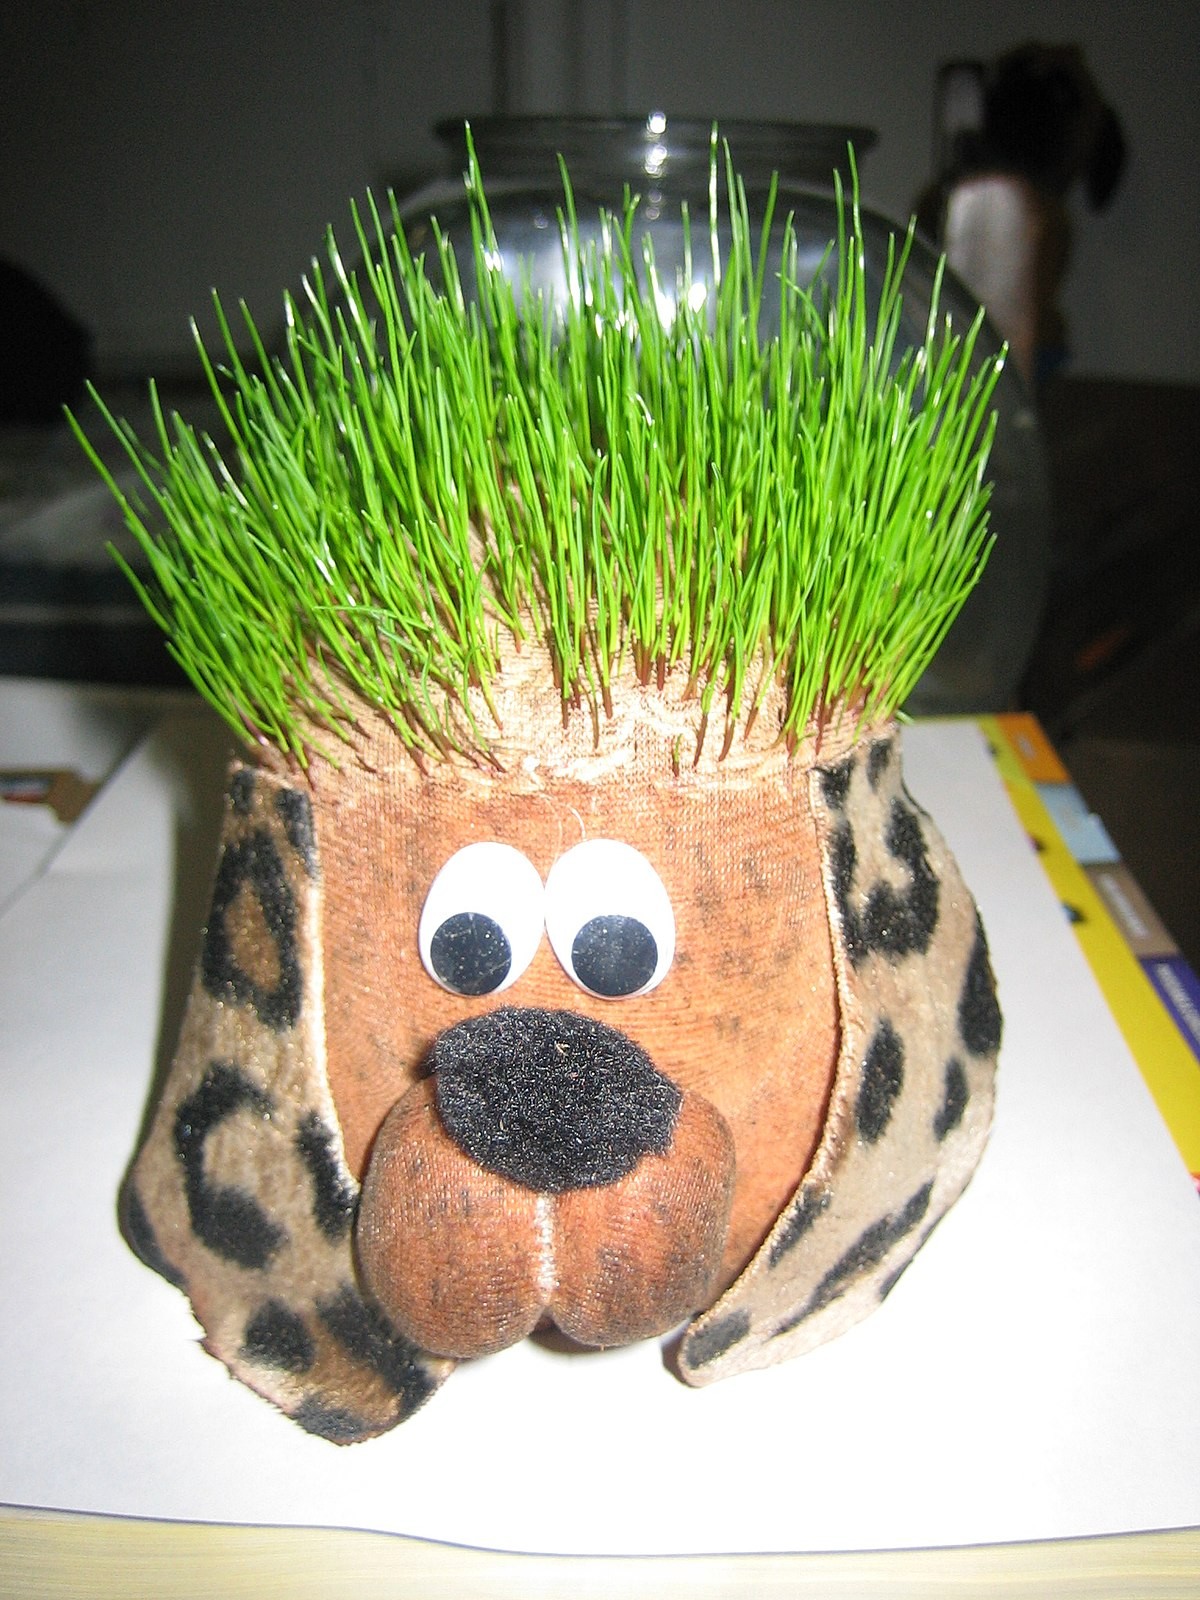 Chia Pet Images : images, File:Chia, Pet.jpg, Wikimedia, Commons